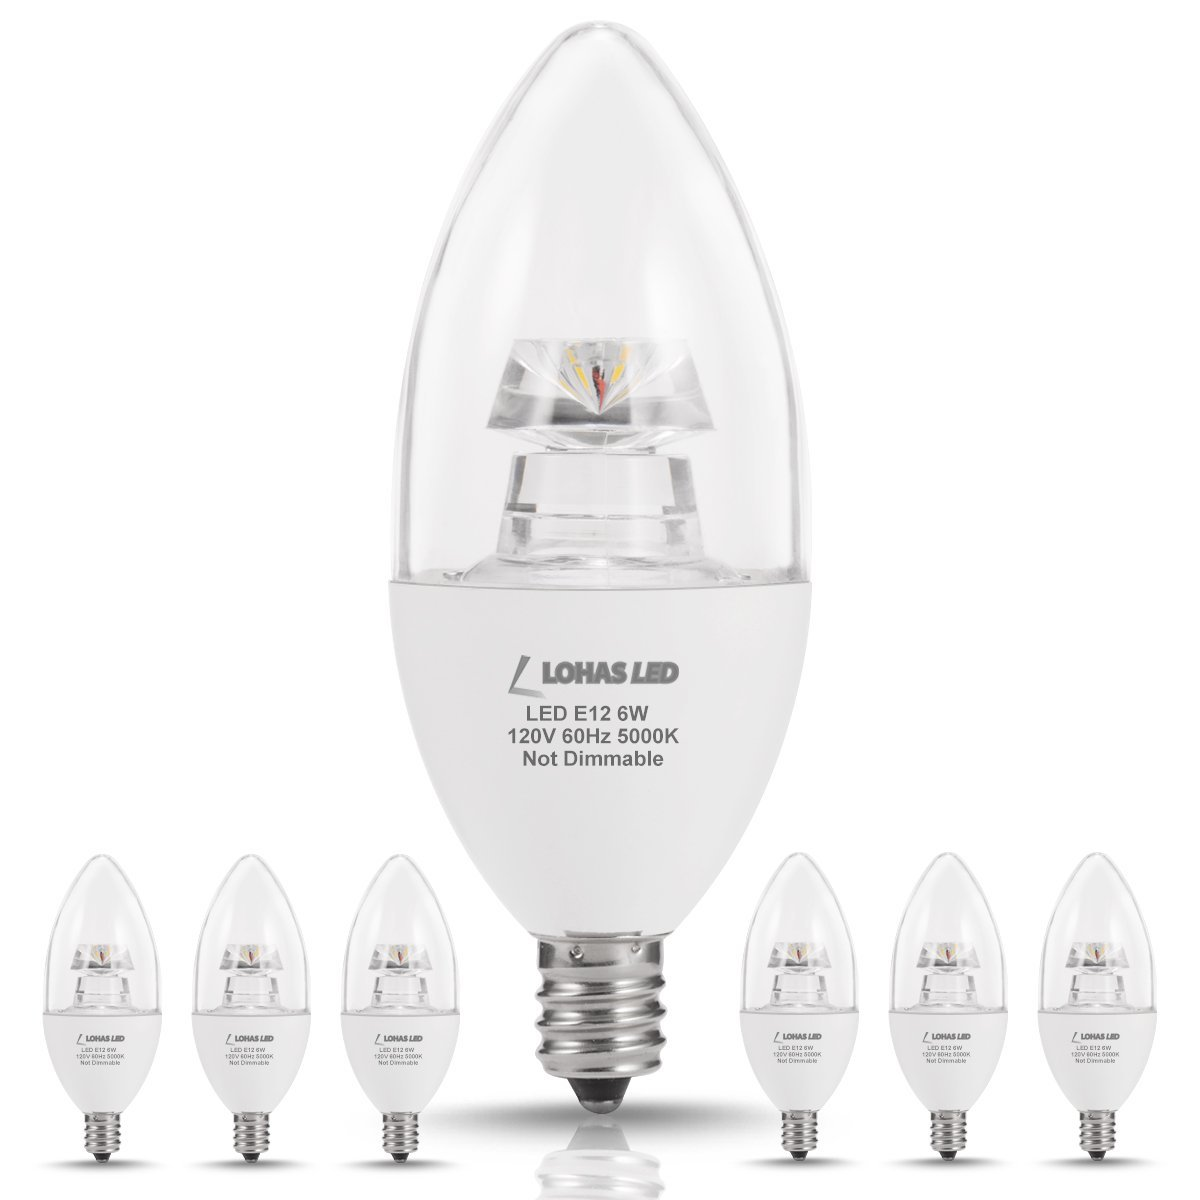 with bulb style filament shapes comparison to shape radio watt lumens incandescent size equivalent light led profile compare dimmable candelabra vintage moreinfo chandelier view